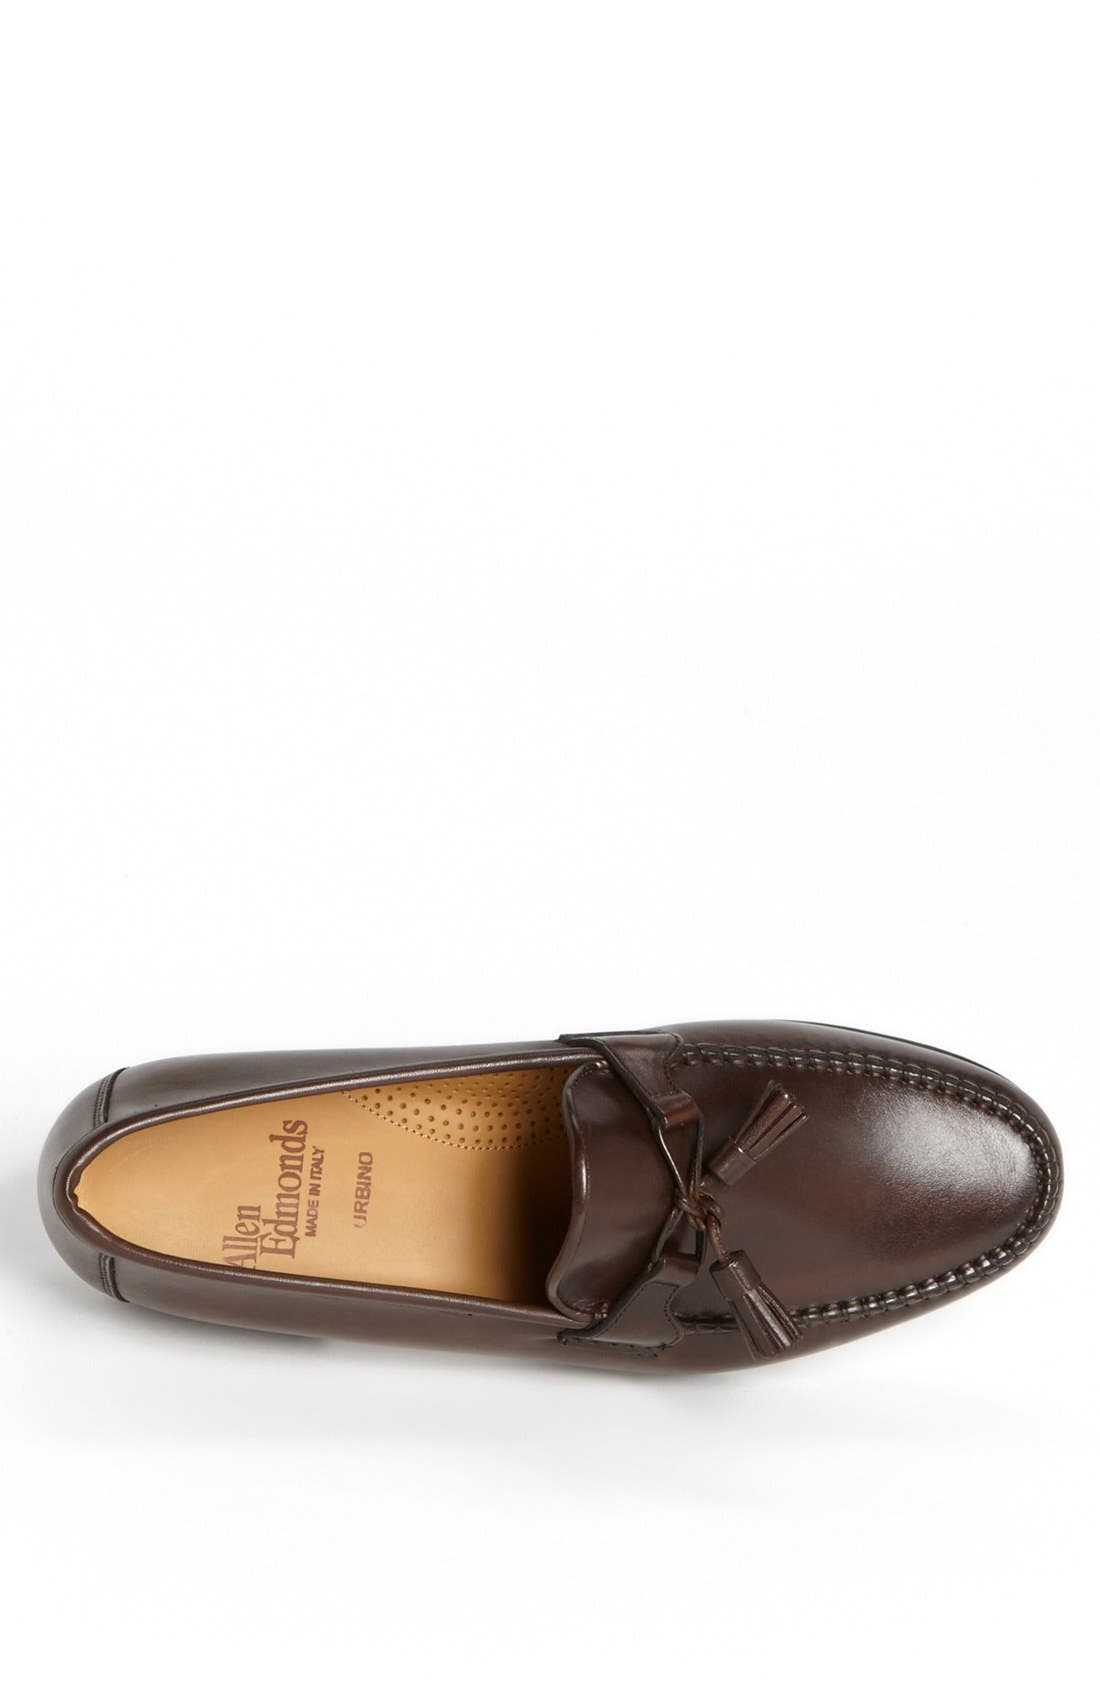 Alternate Image 3  - Allen Edmonds 'Urbino' Tassel Loafer (Men)